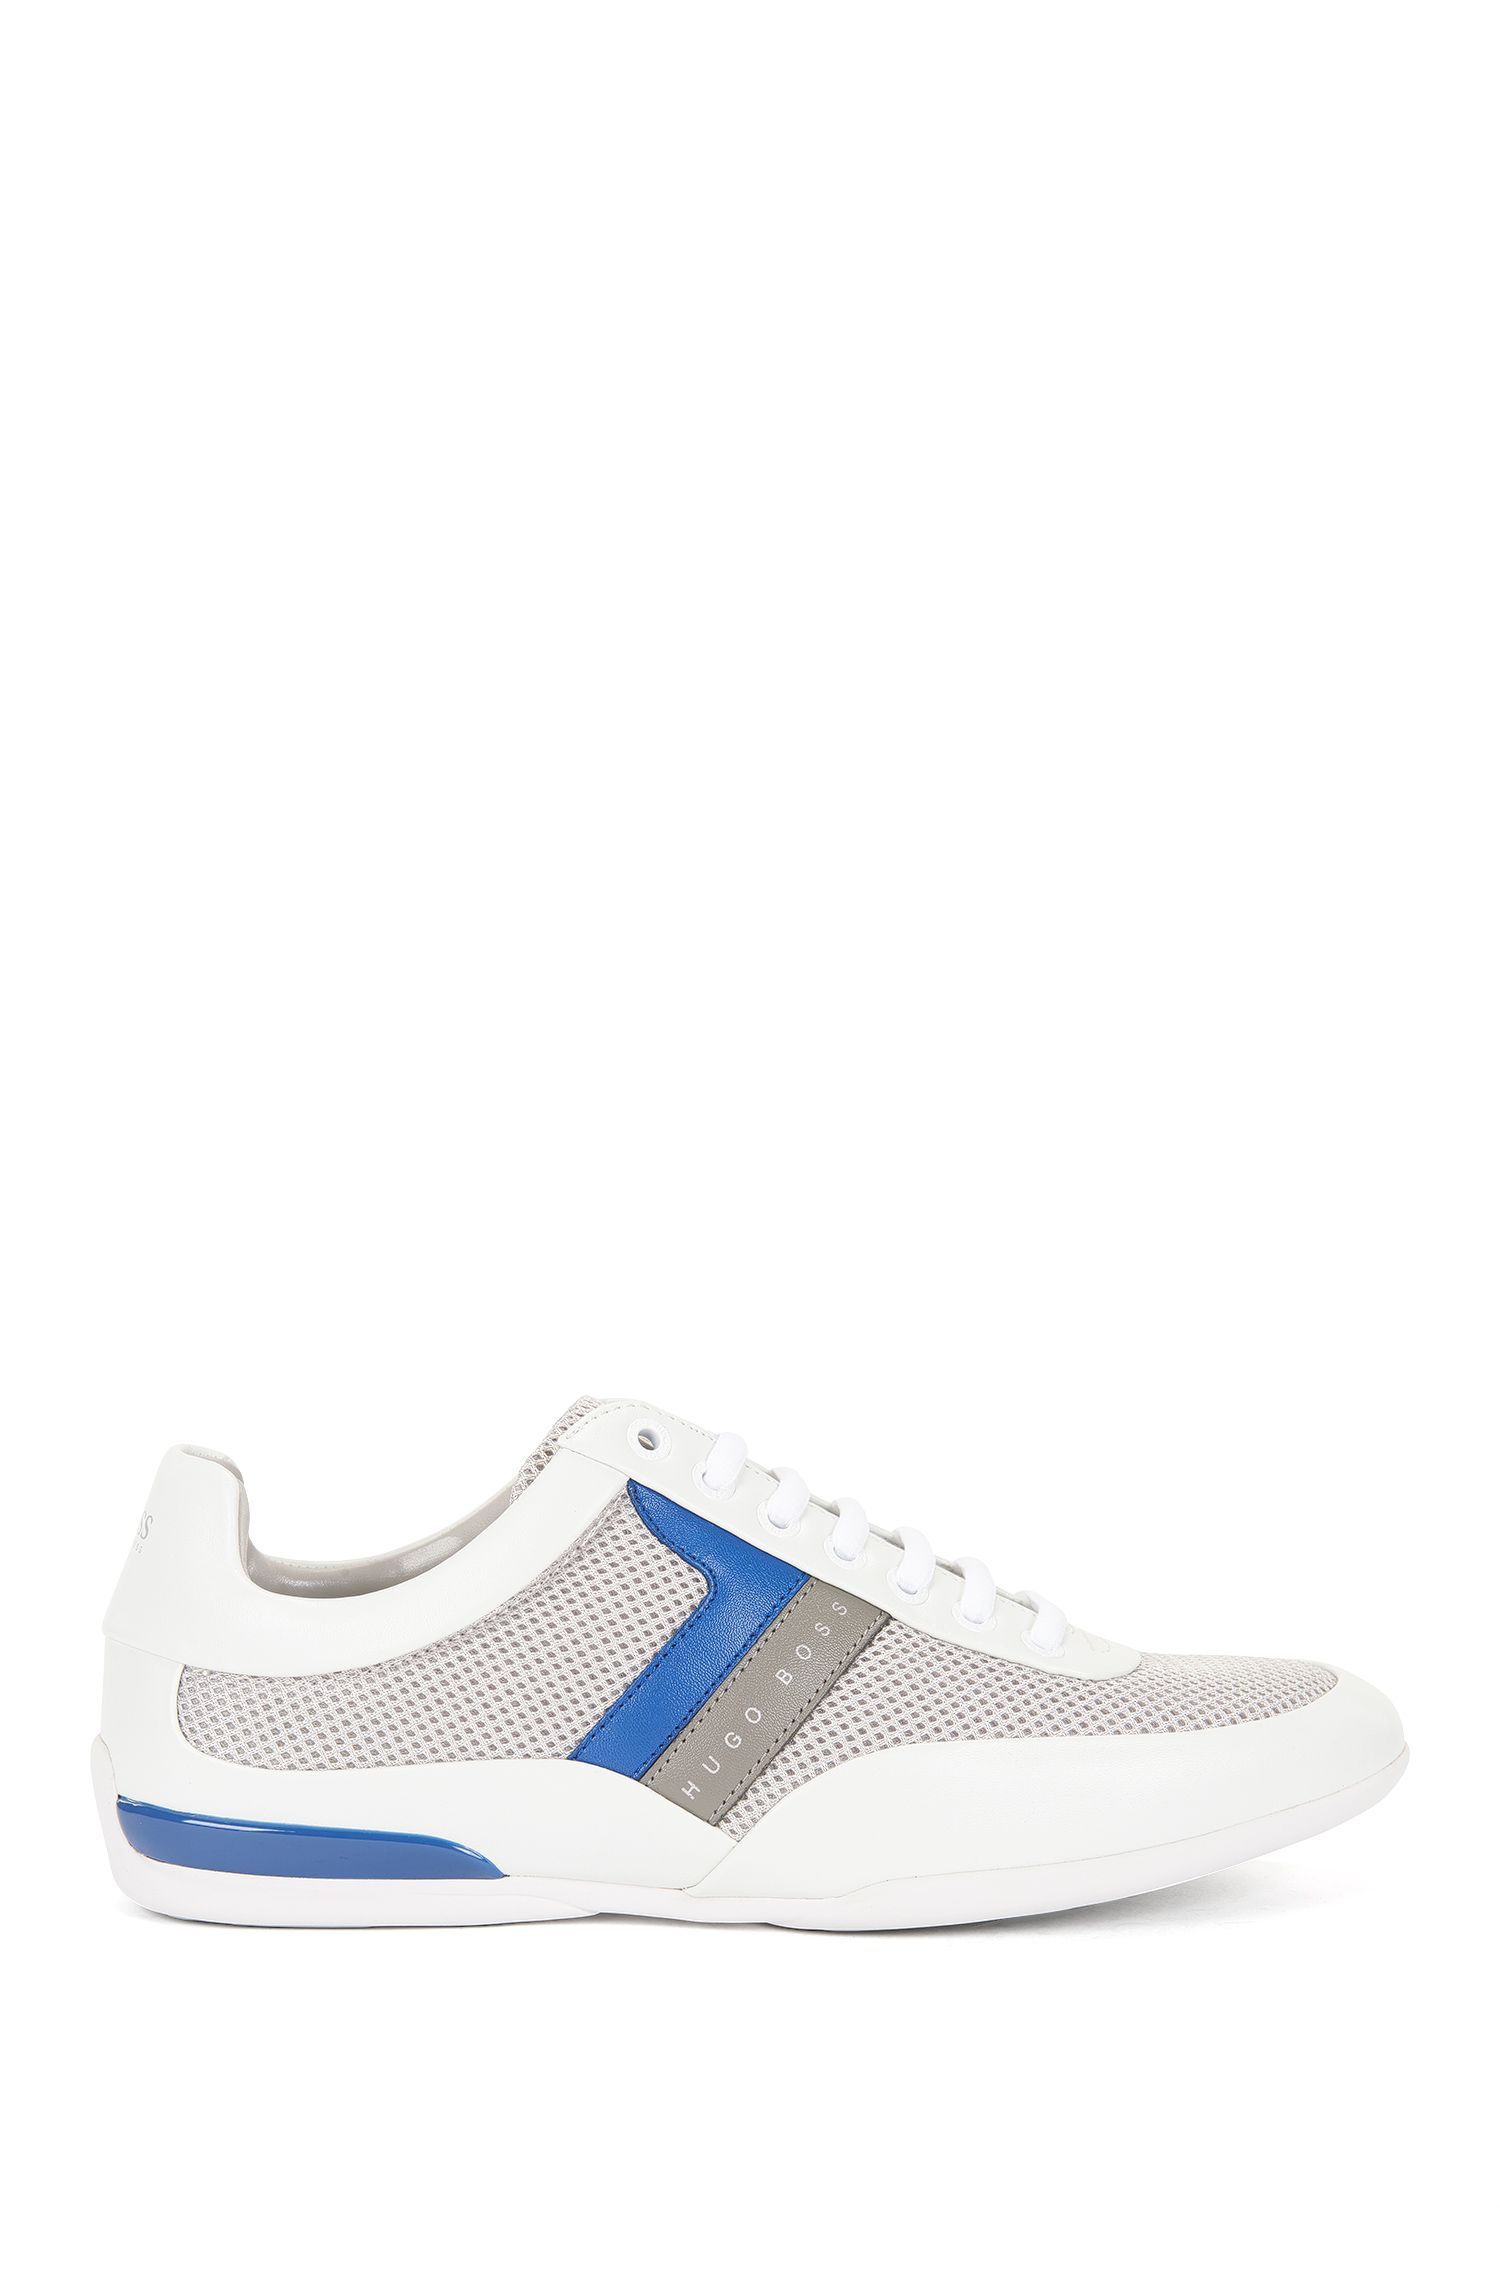 Vegan Leather Sneaker | Space Lowp Syme